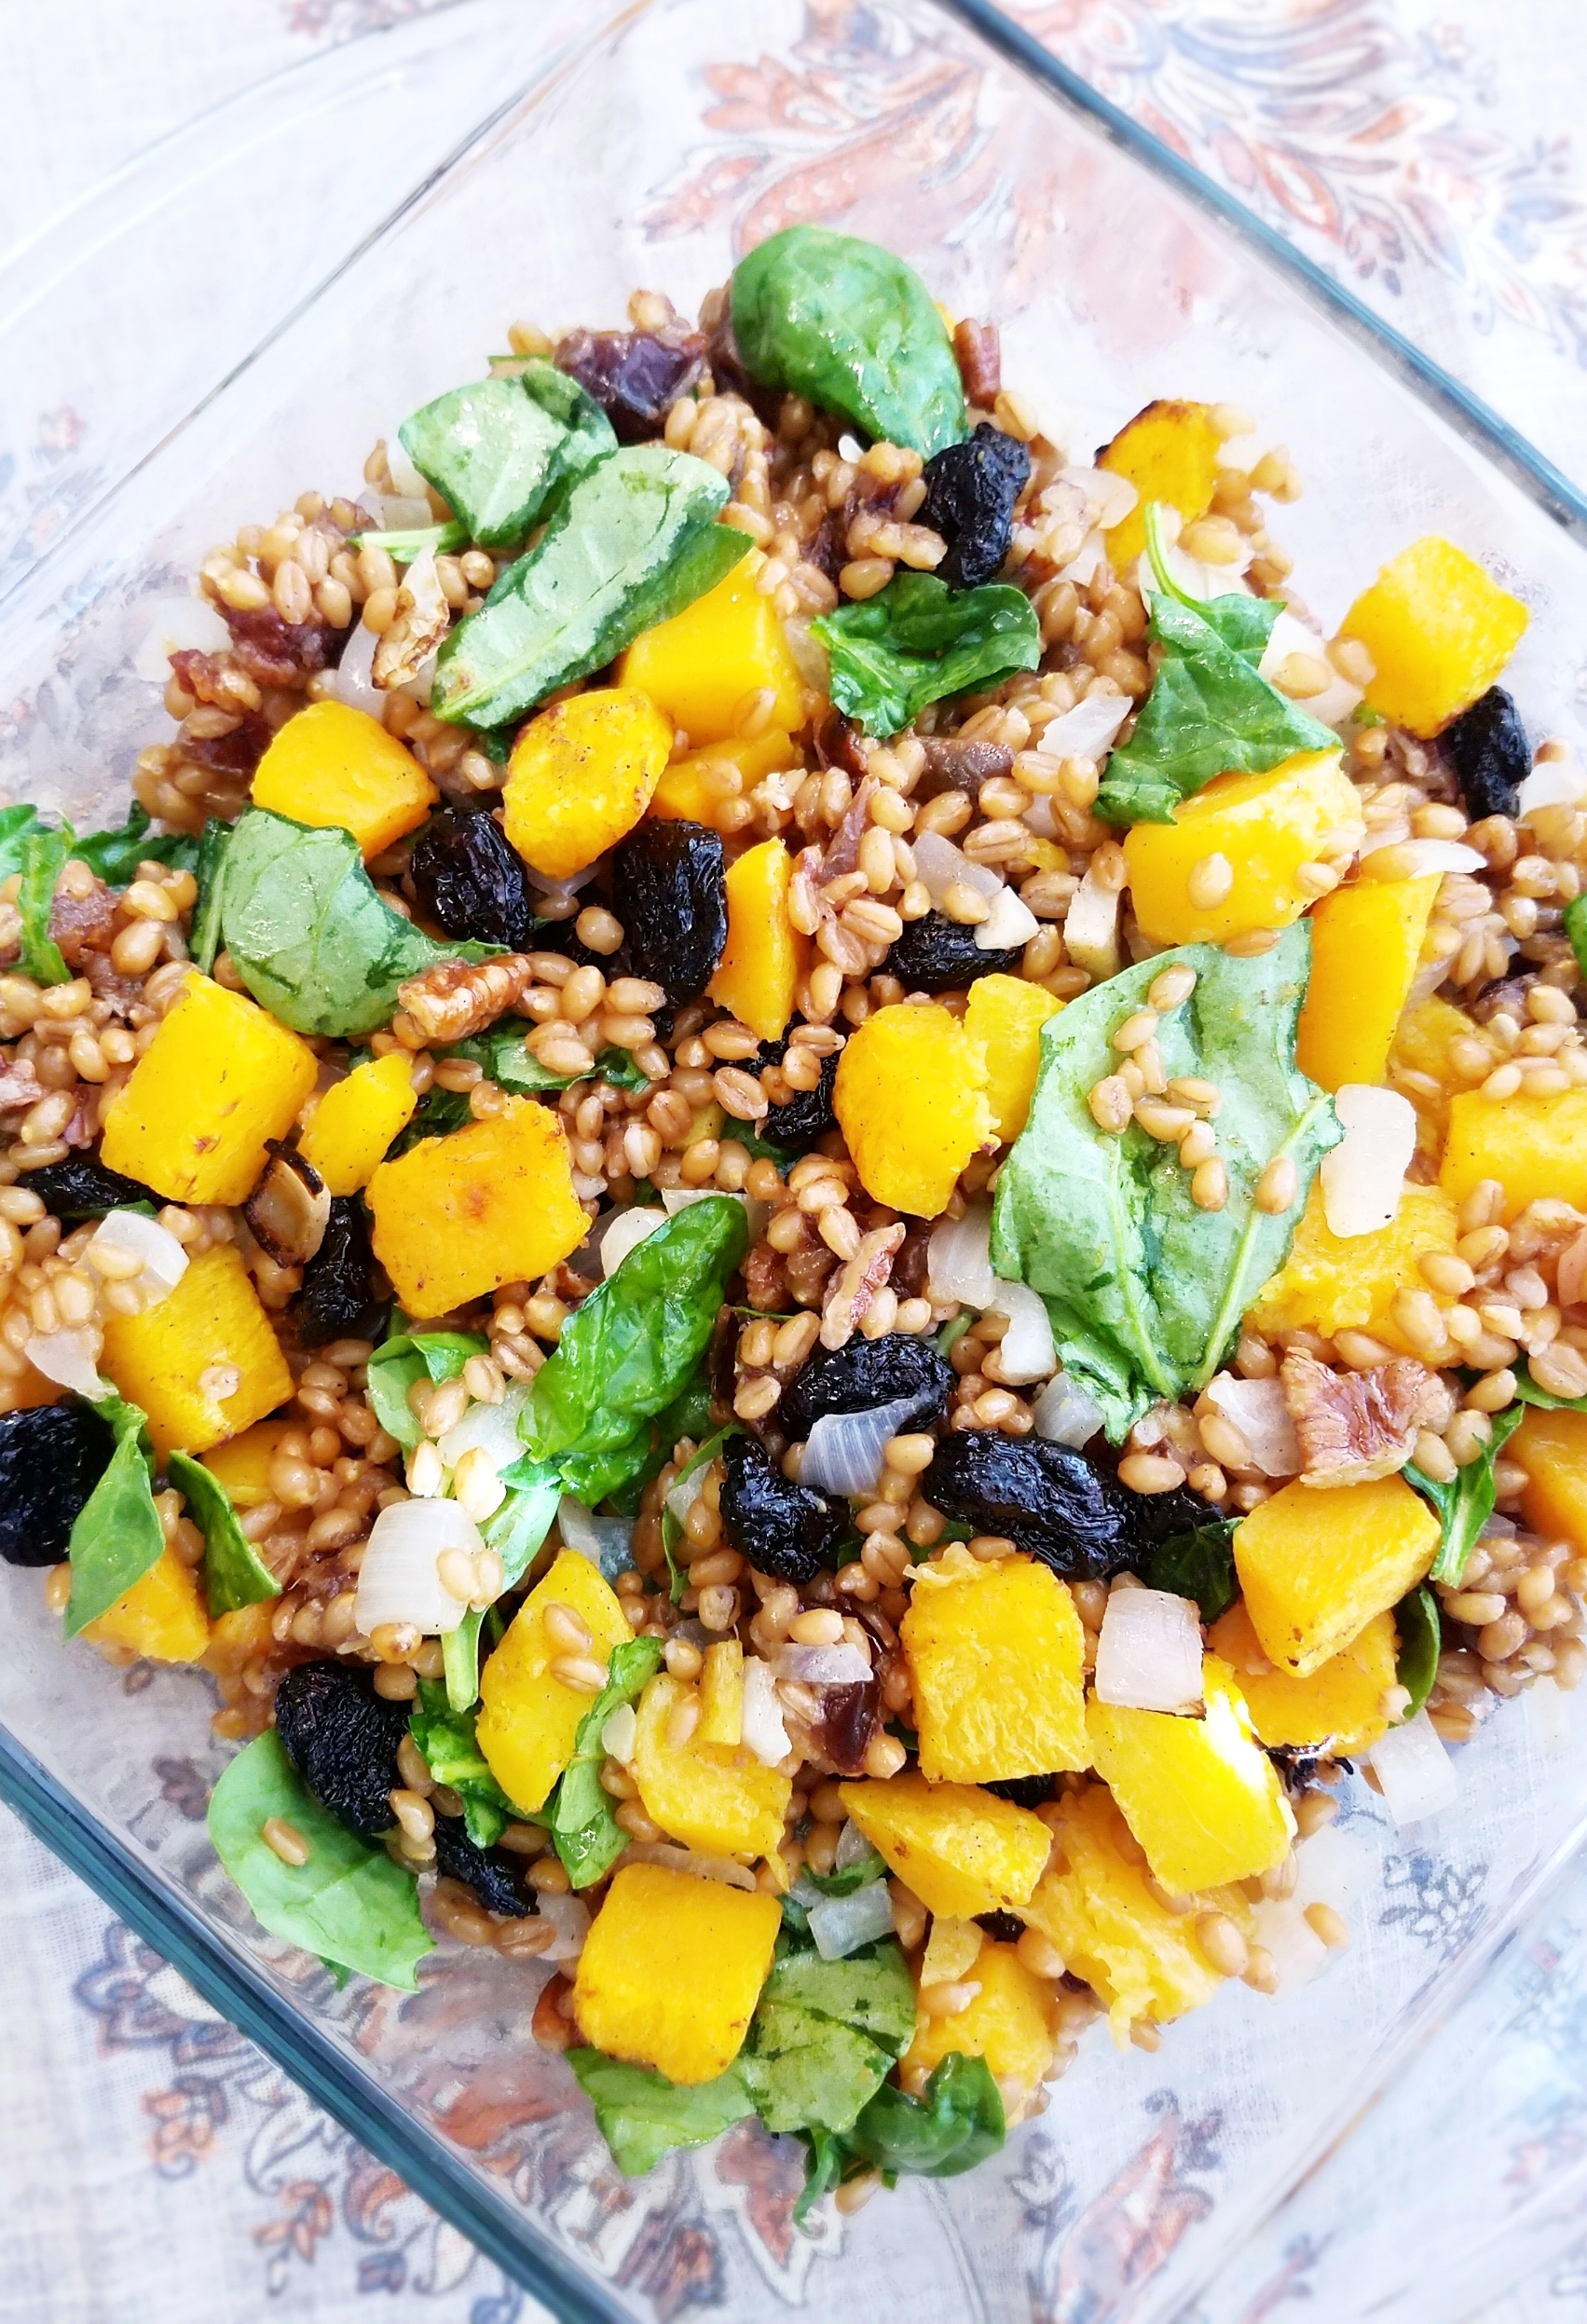 Butternut Squash with Dried Cherries and Winter Wheat Berries